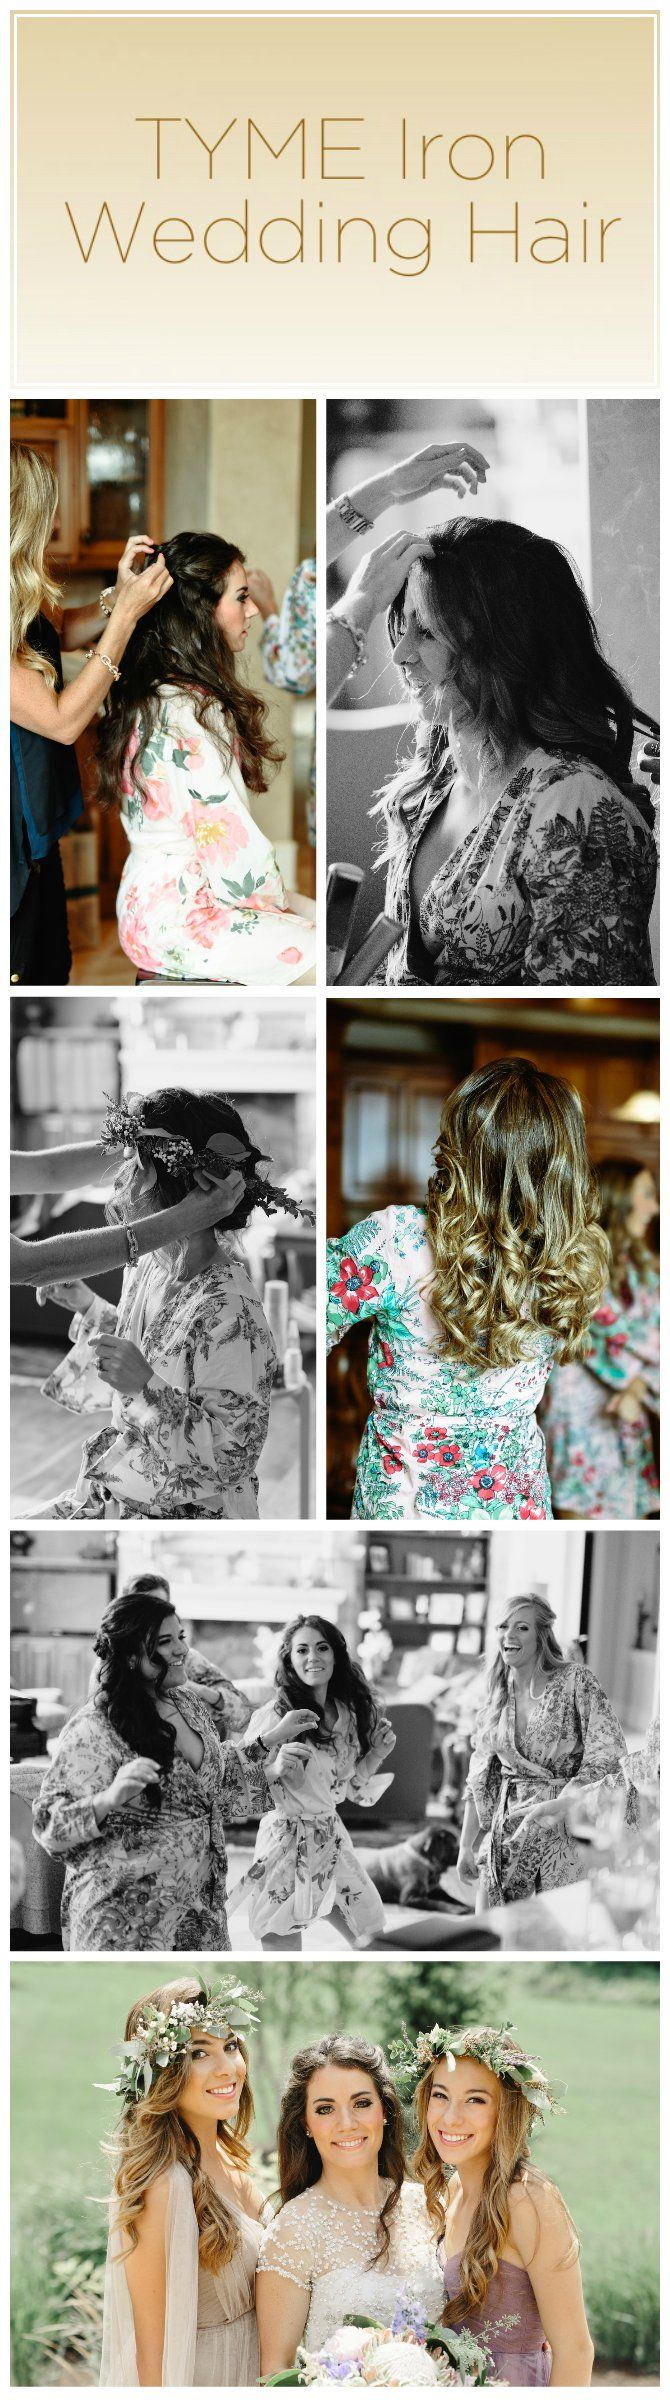 Must have floral crowns with beachy curls for a fall wedding! TYME to make wedding hair fun again, like the ultimate start to a girls night out!